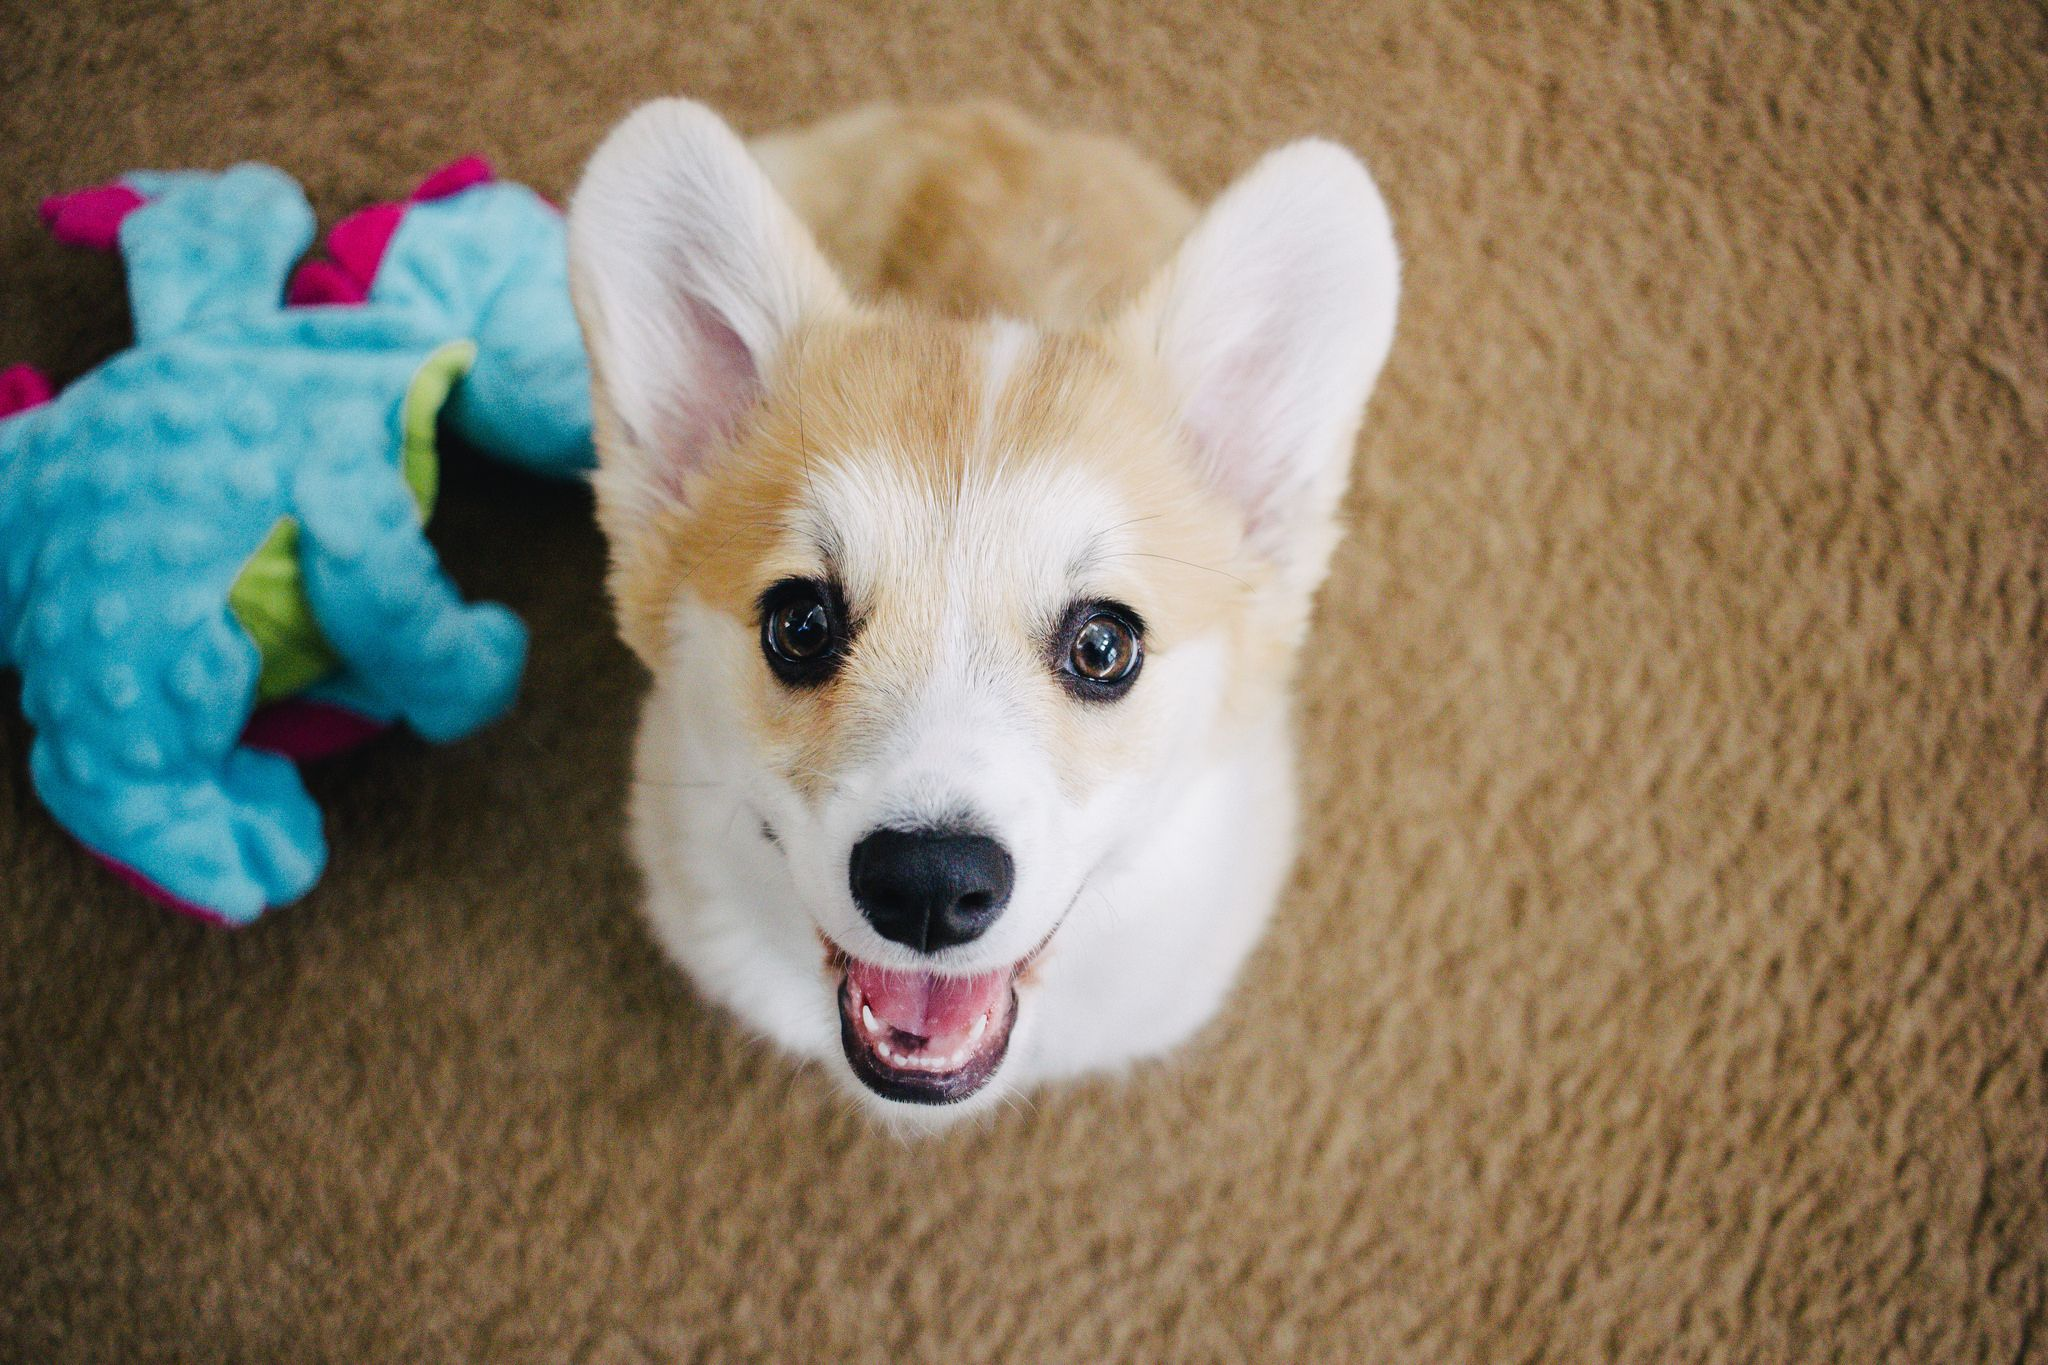 19 Corgi Puppy Gifs And Photos To Make You Smile